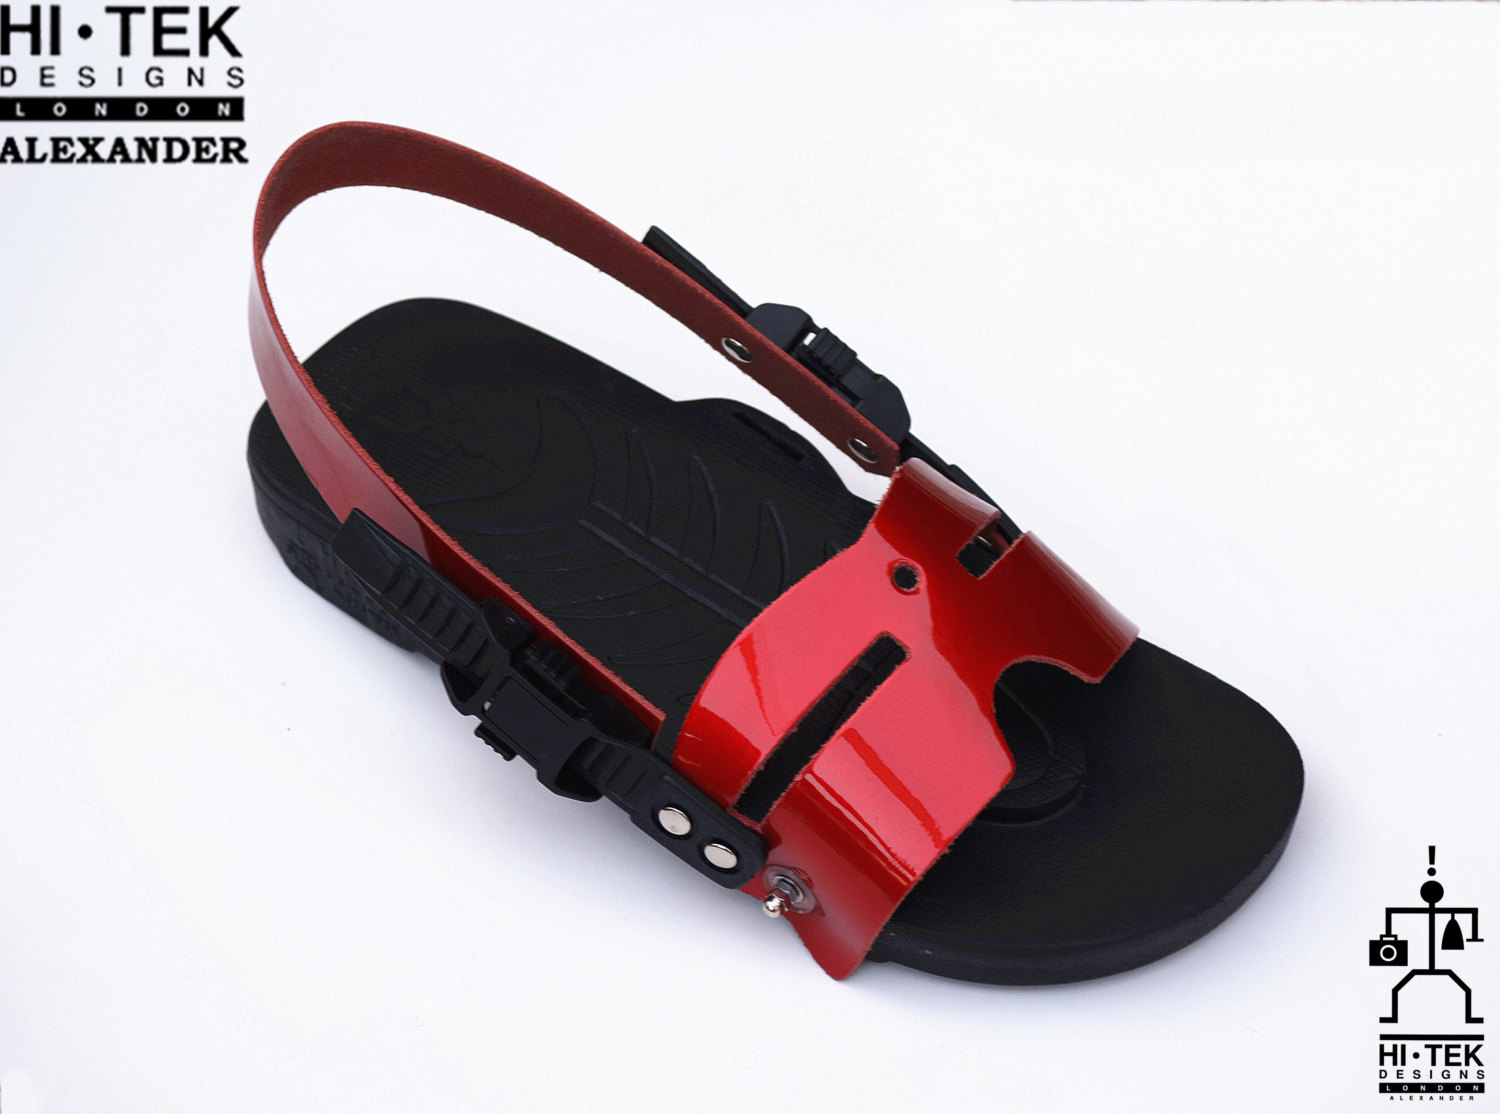 statement sandals for men unusual unique one of a kind made to impress black EVA sole red leather upper